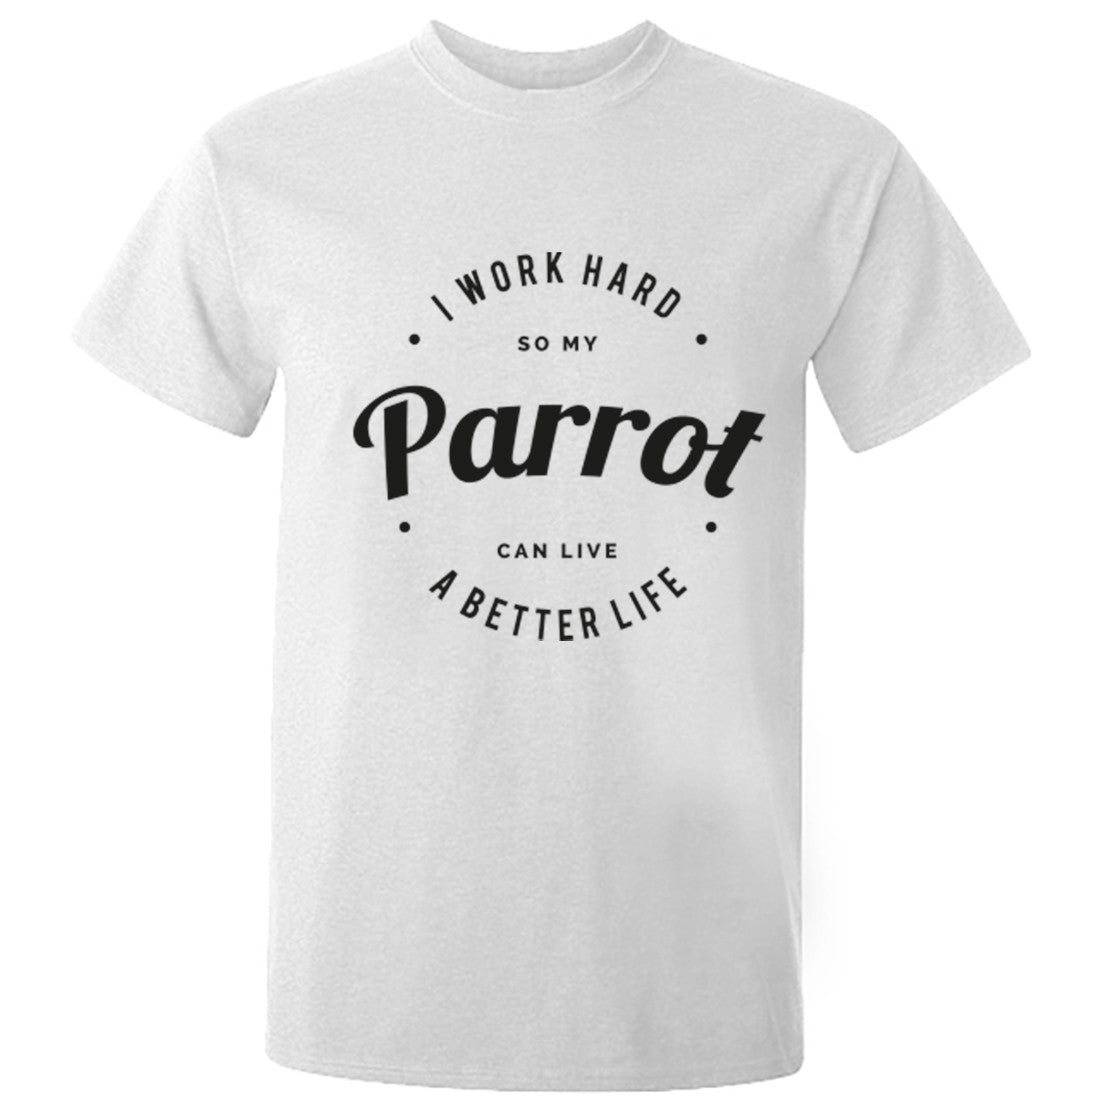 I Work Hard So My Parrot Can Live A Better Life Unisex Fit T-Shirt K0441 - Illustrated Identity Ltd.